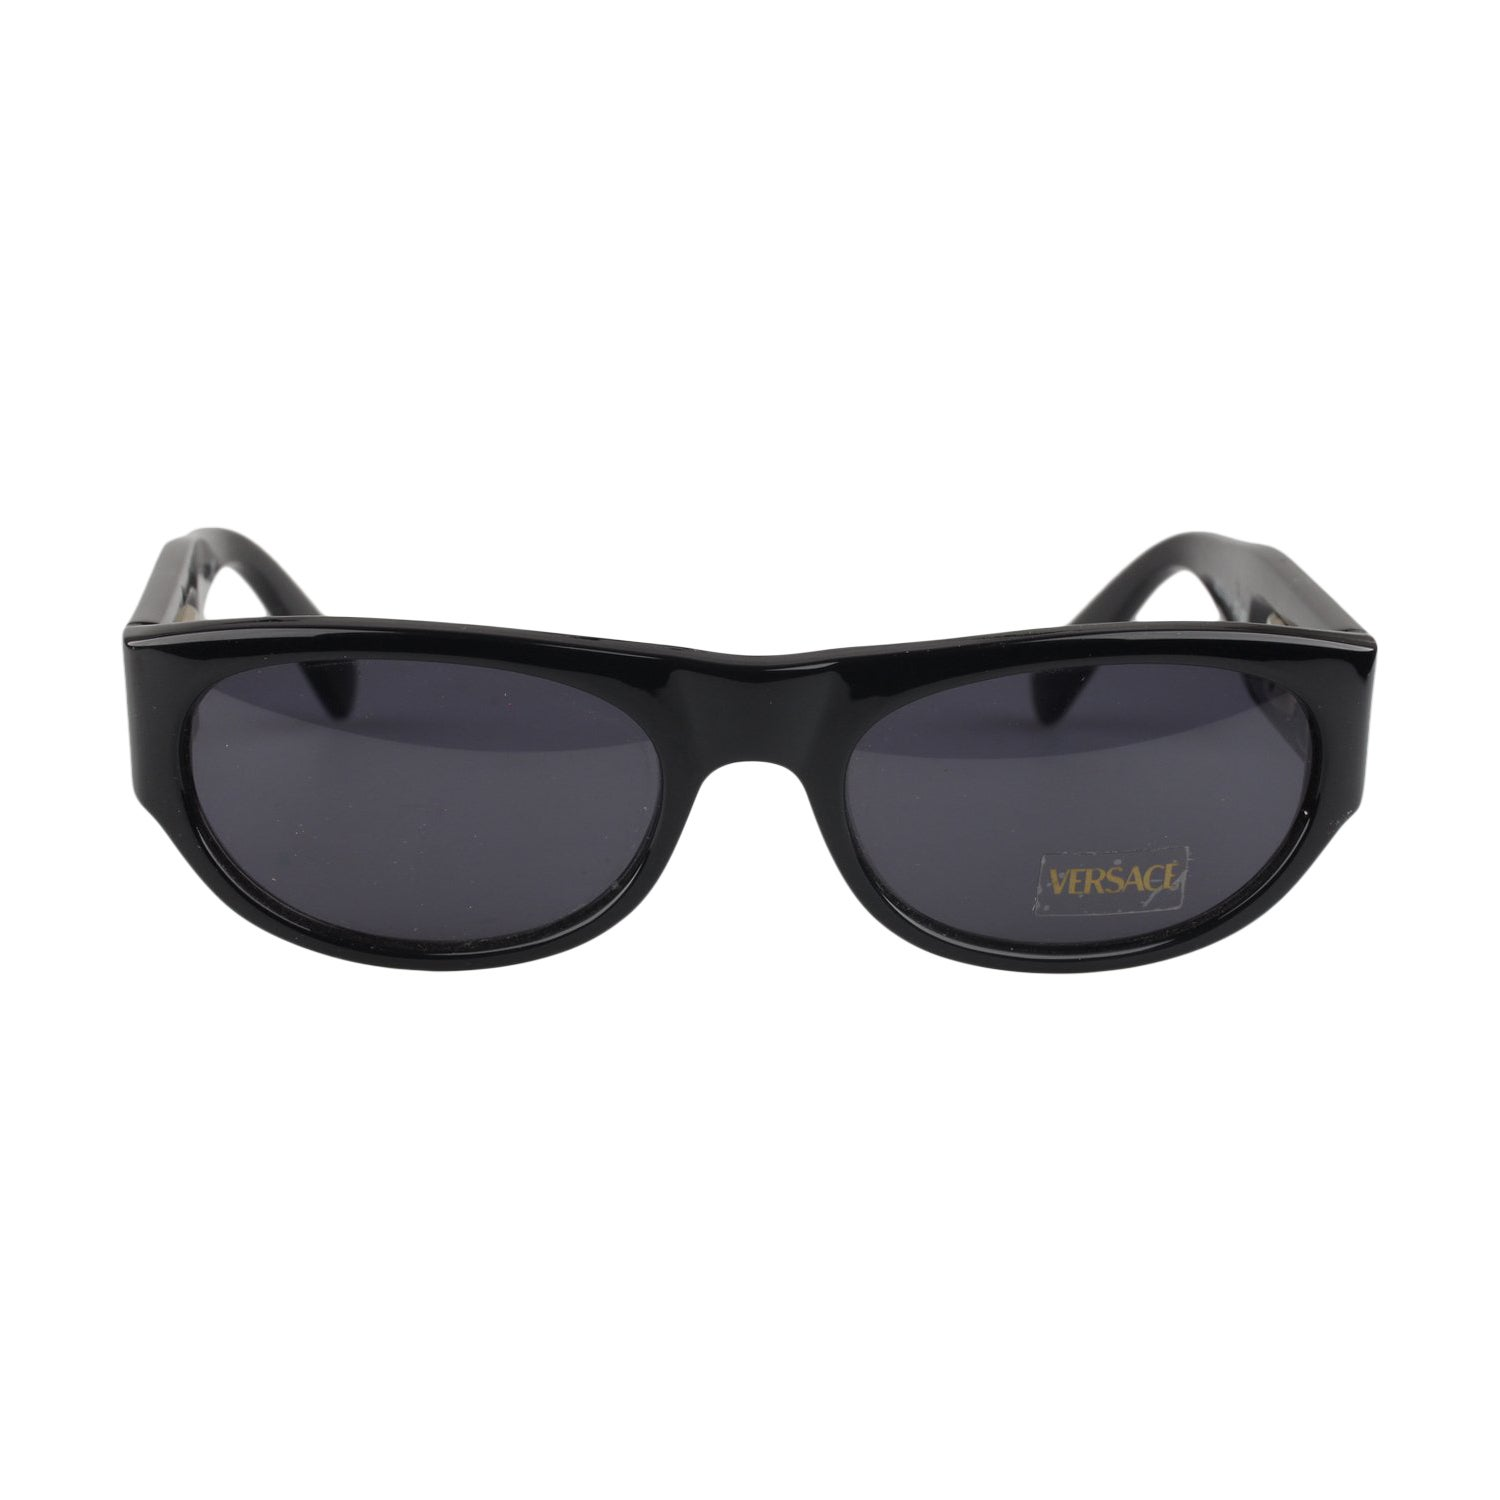 7e974c32bf8 Gianni Versace Vintage Black Sunglasses Mod 474A Col 852 New Old Stock For  Sale at 1stdibs